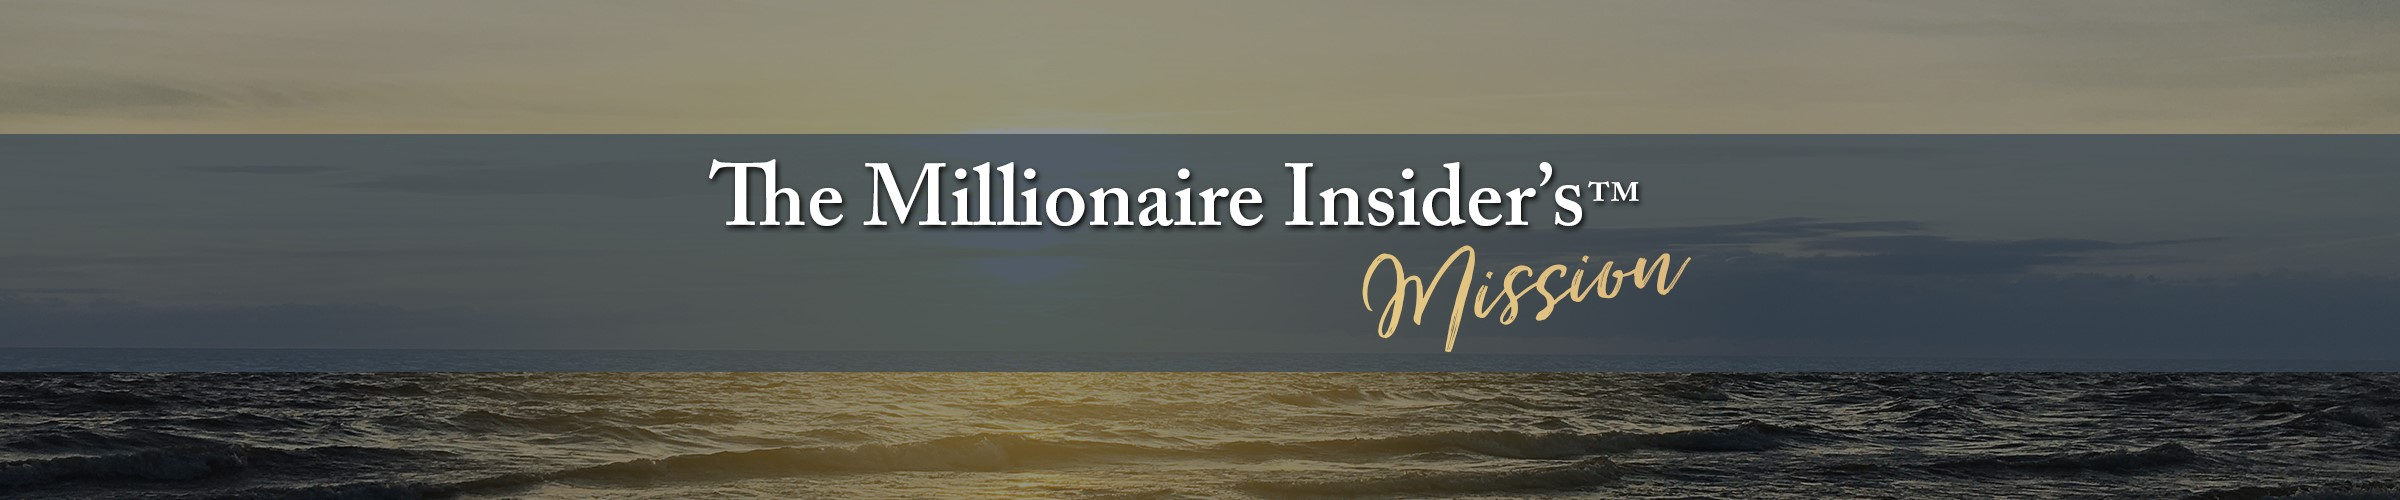 the millionaire insider's mission